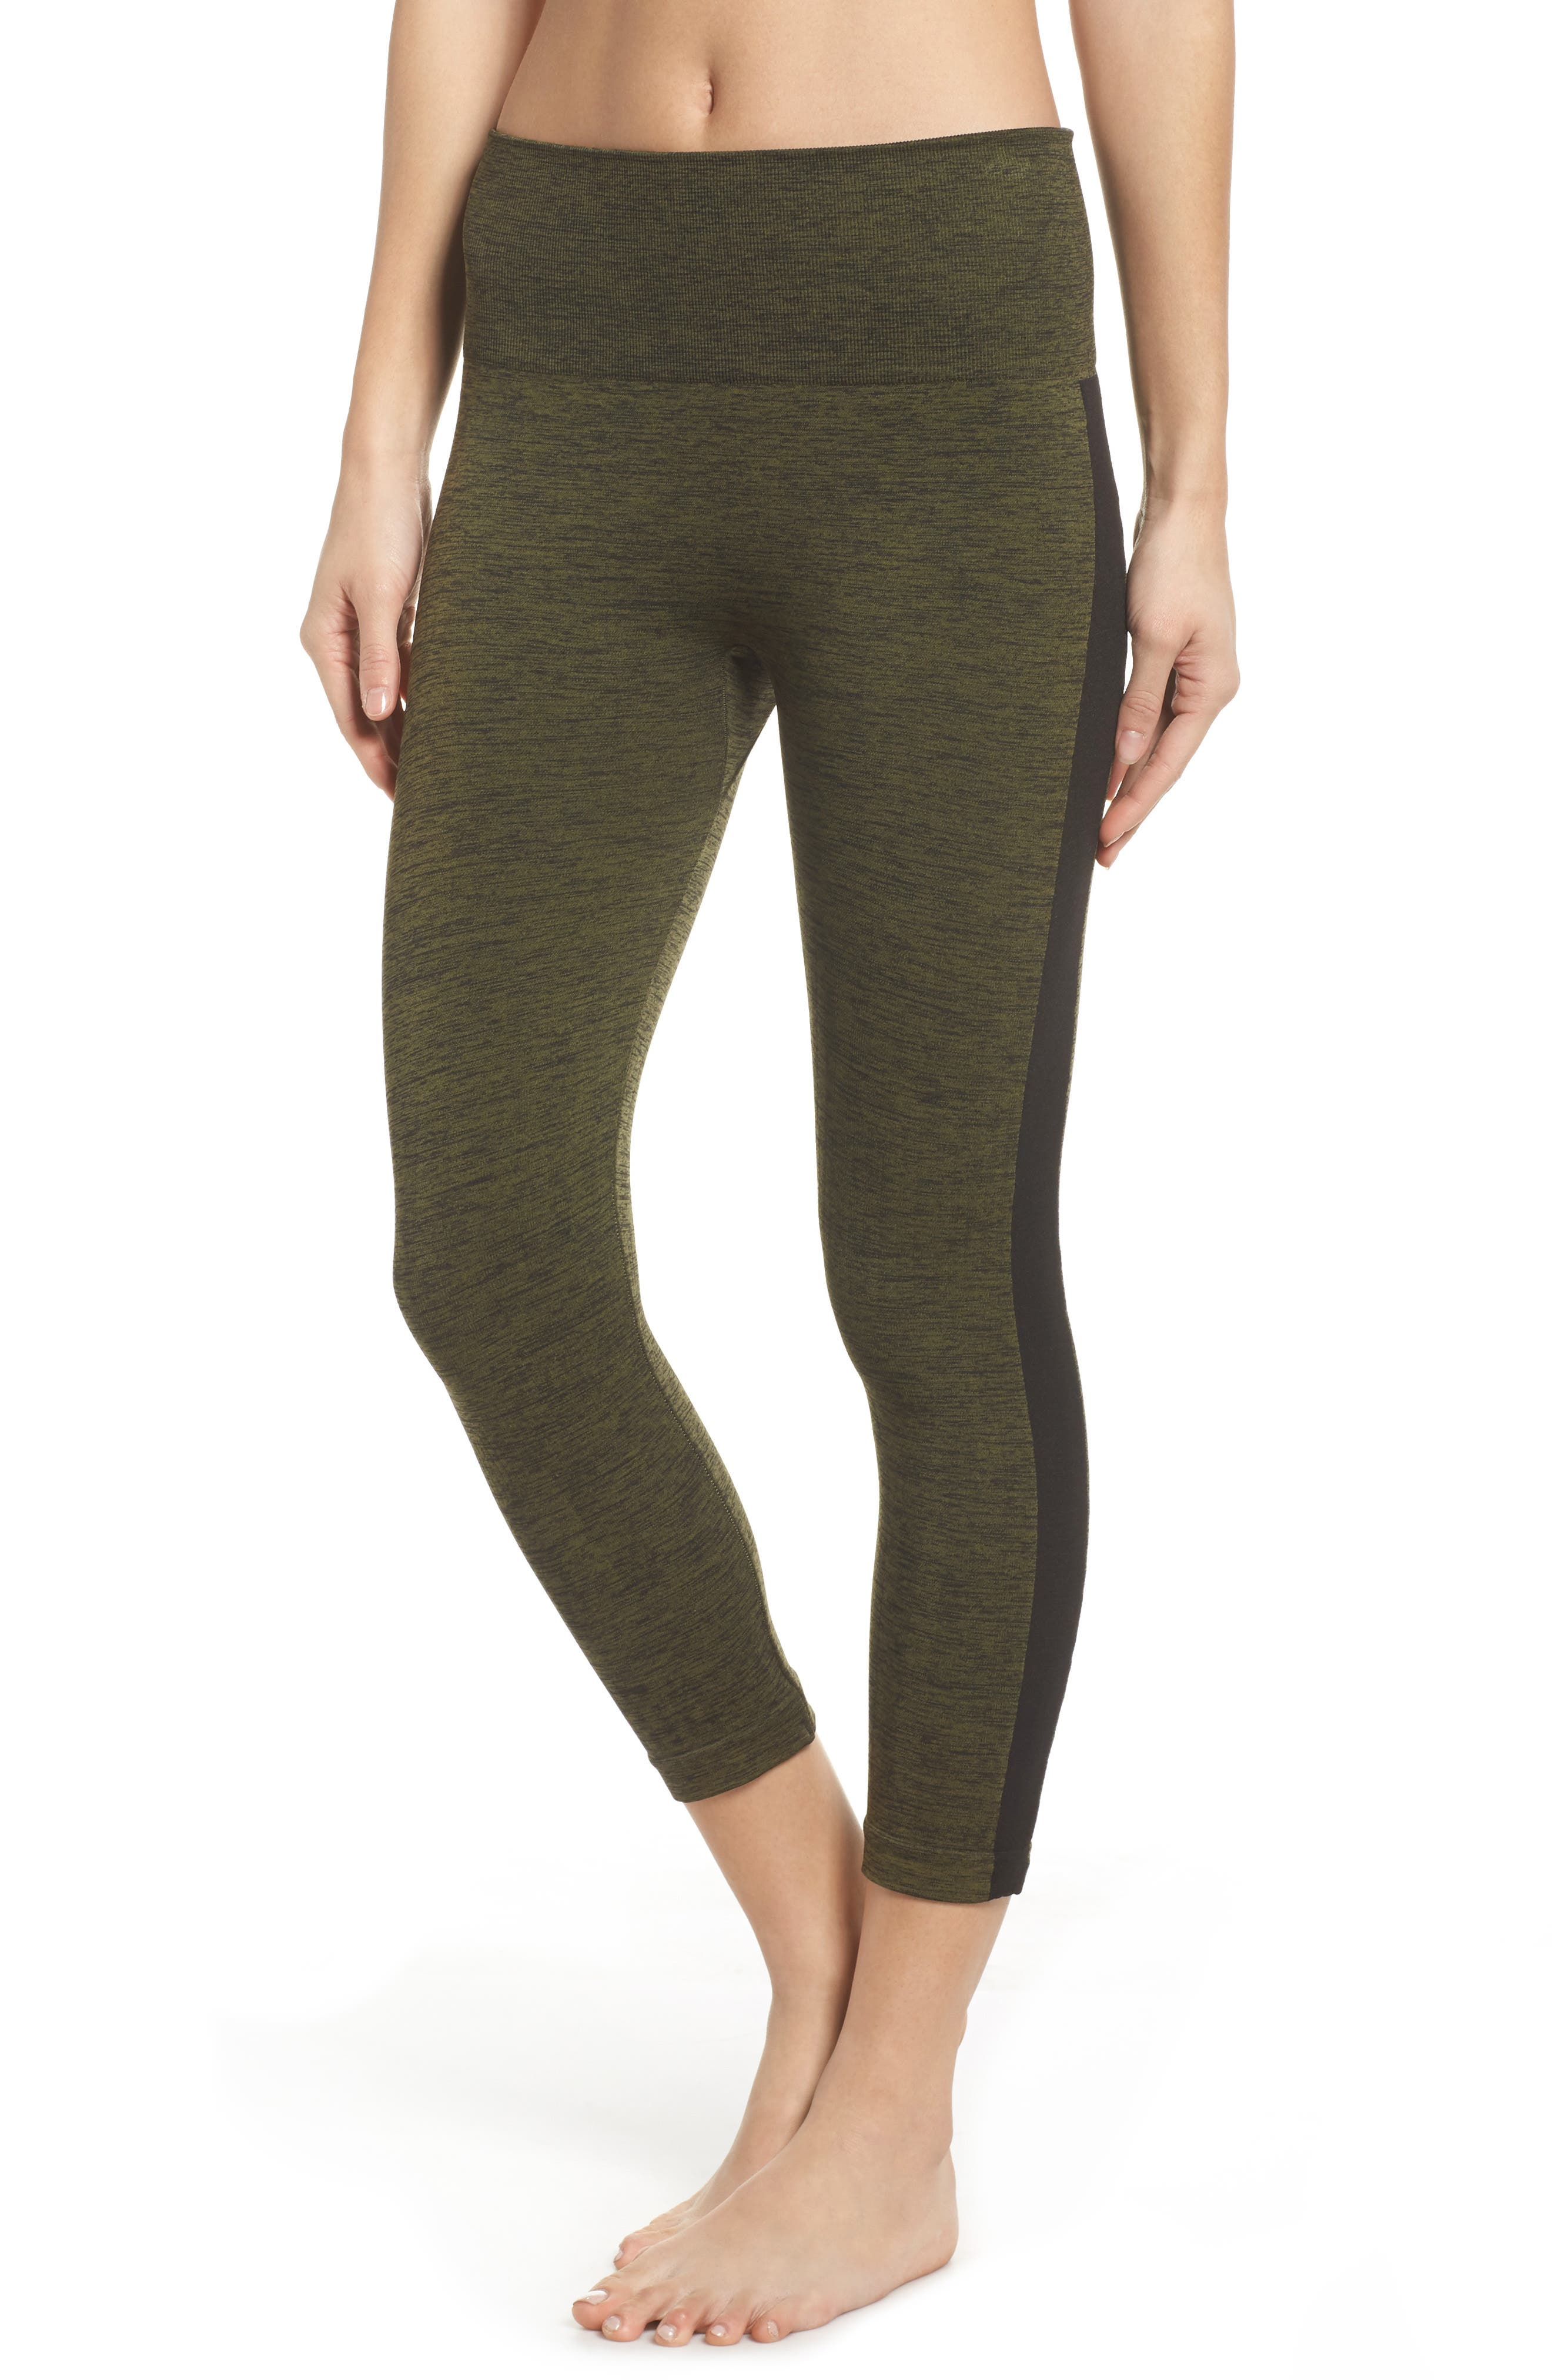 Stamina Capri Leggings,                             Main thumbnail 1, color,                             300